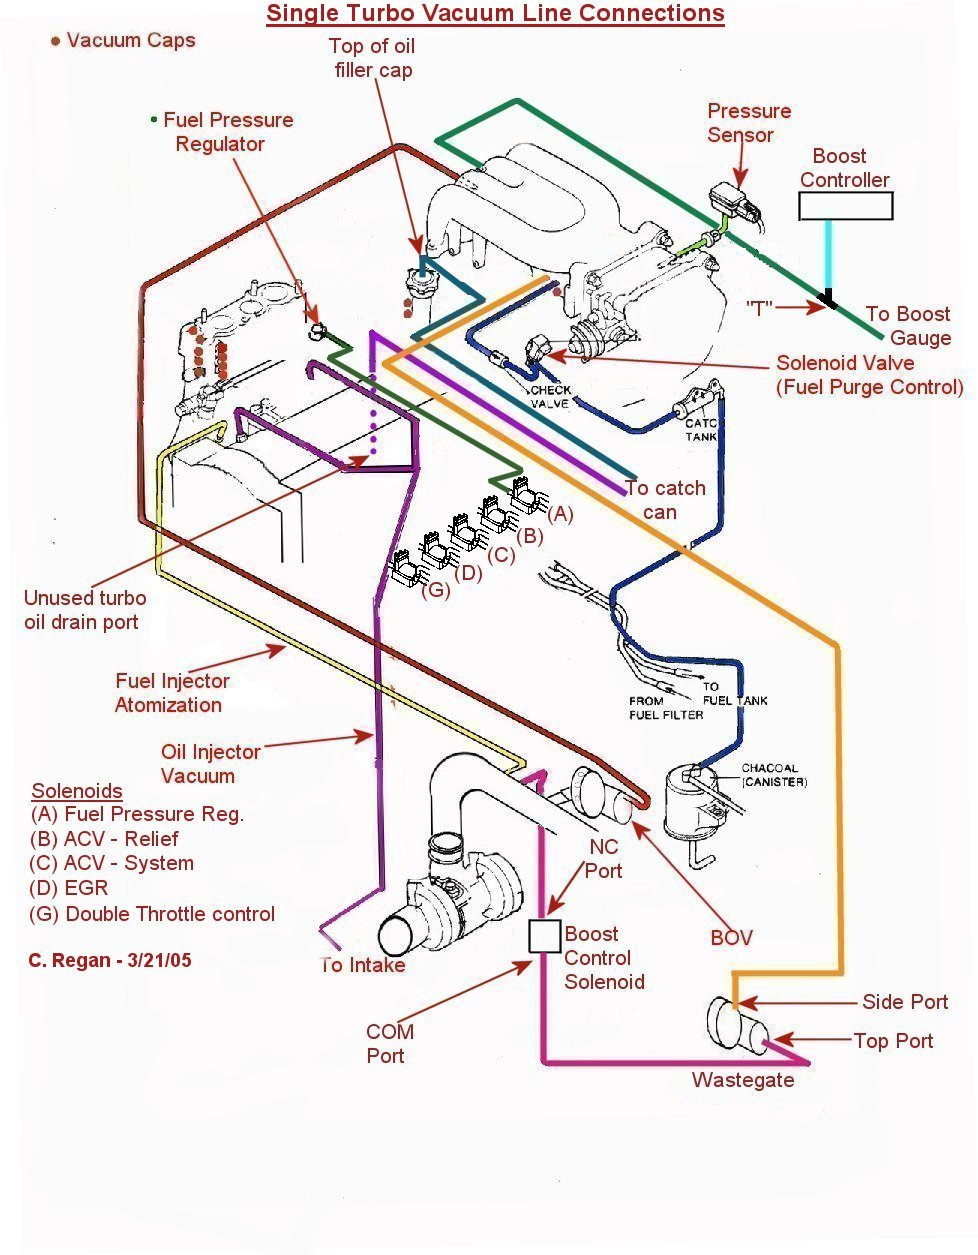 Mazda Turbo Diagram Enthusiast Wiring Diagrams \u2022 Mazda MZR 2.0 Engine  Dimensions Mazda 2.3 Turbo Engine Diagram